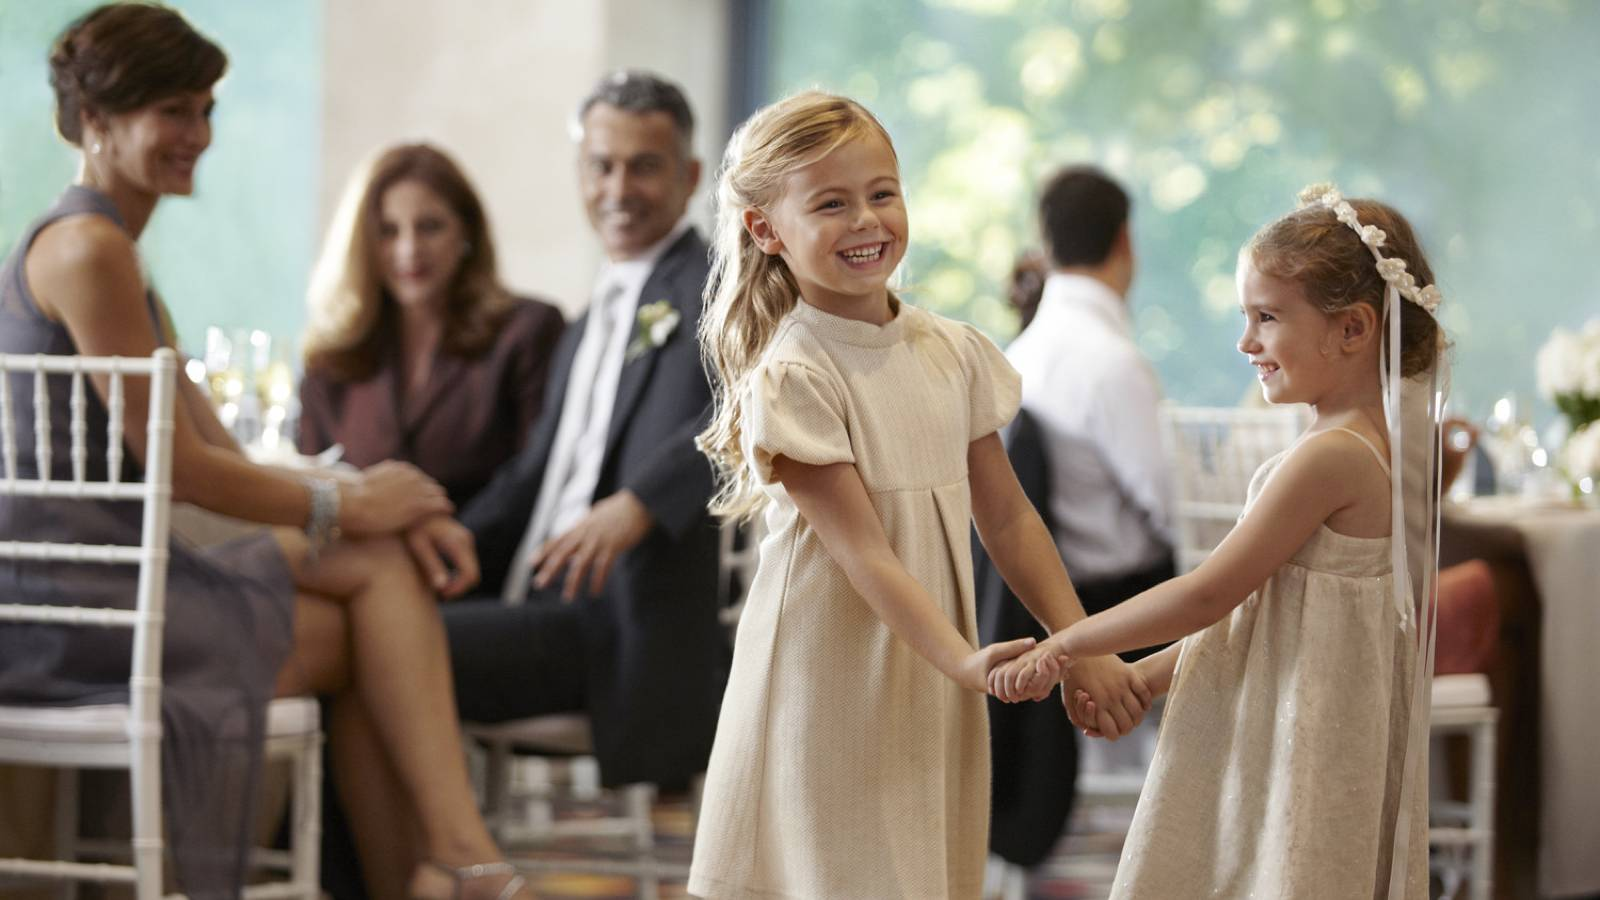 Flushing Wedding Venues Flower Girls